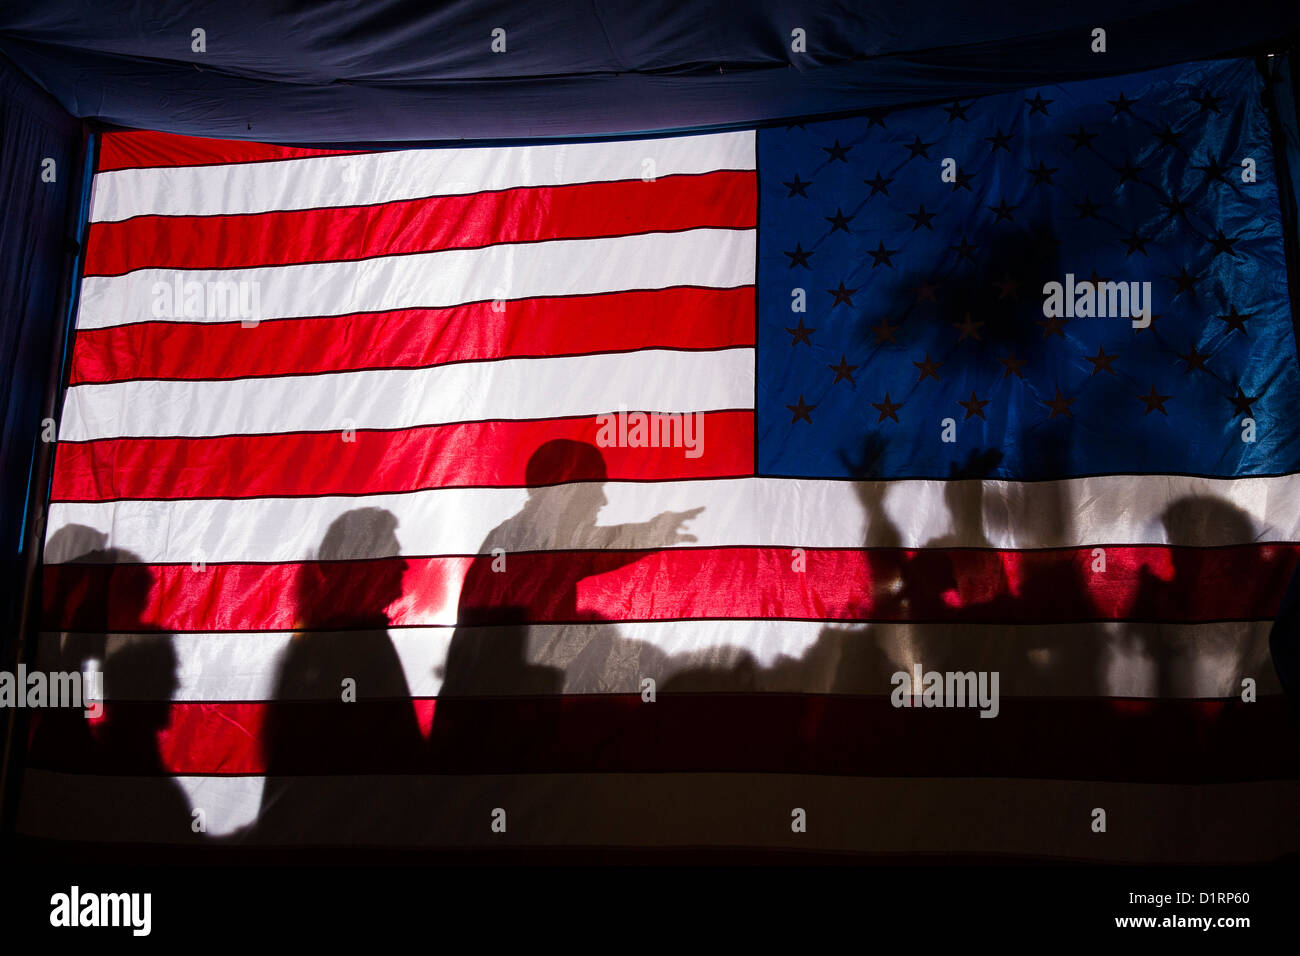 US President Barack Obama is silhouetted against a American flag during an evening campaign rally November  3, 2012 - Stock Image